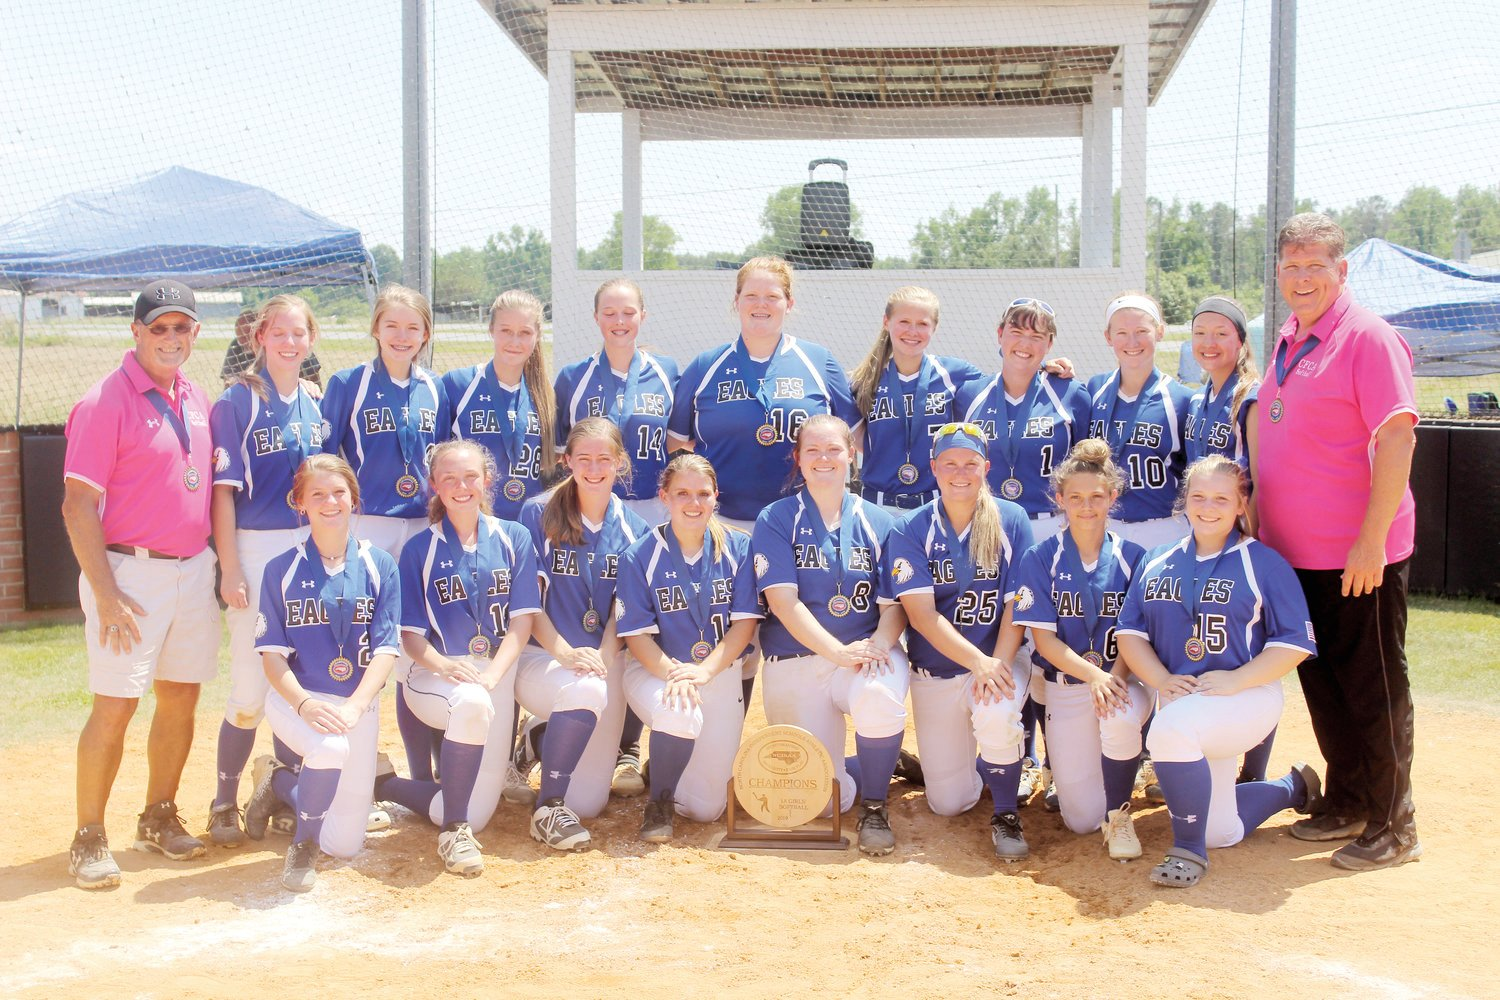 Cape Fear Christian Academy poses for a team shot after winning the 2019 NCISAA 1A Softball Champions. Kneeling from left are Gabbi Chiodo, Anslee McLamb, Meghan Taylor, Jada Horne, Kristen Bass, Paige Jeffries, Harmony Horne and McKenzie Burris. Standing from left are Coach Sterling Holmes, Claire Parker, Leah Brannon, Shelby Hodges, Rebekah Ennis, Aubree Bass, Averi Williams, Natalia Brocious, Rhyleigh Horne, Trinity Olive and assistant coach Craig Autry.